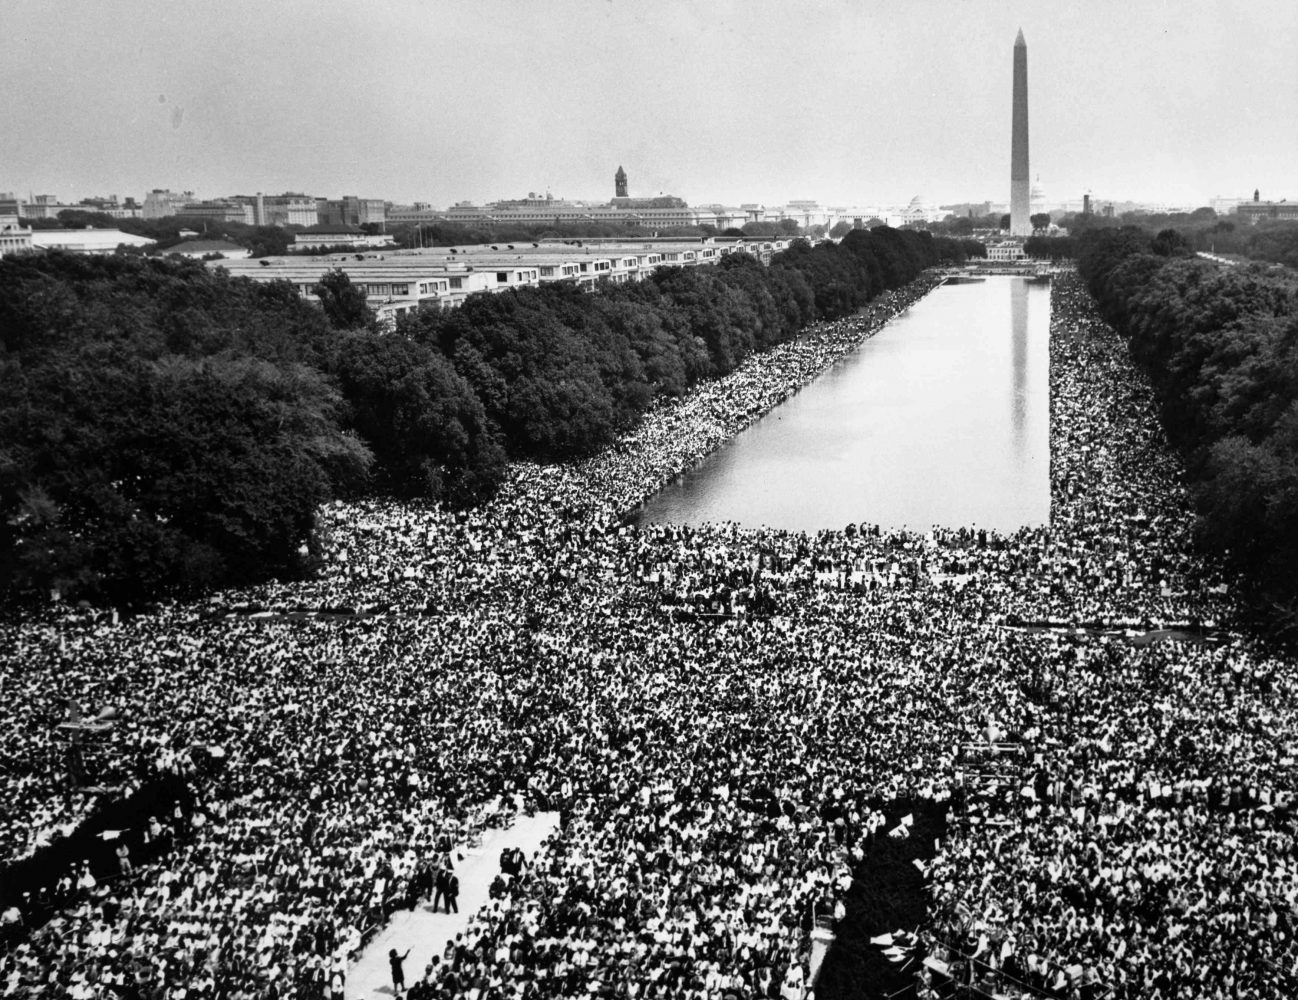 Hundreds of thousands of marchers gather around the reflecting pool in front of the Washington monument and listen as the Rev. Martin Luther King Jr. delivers his